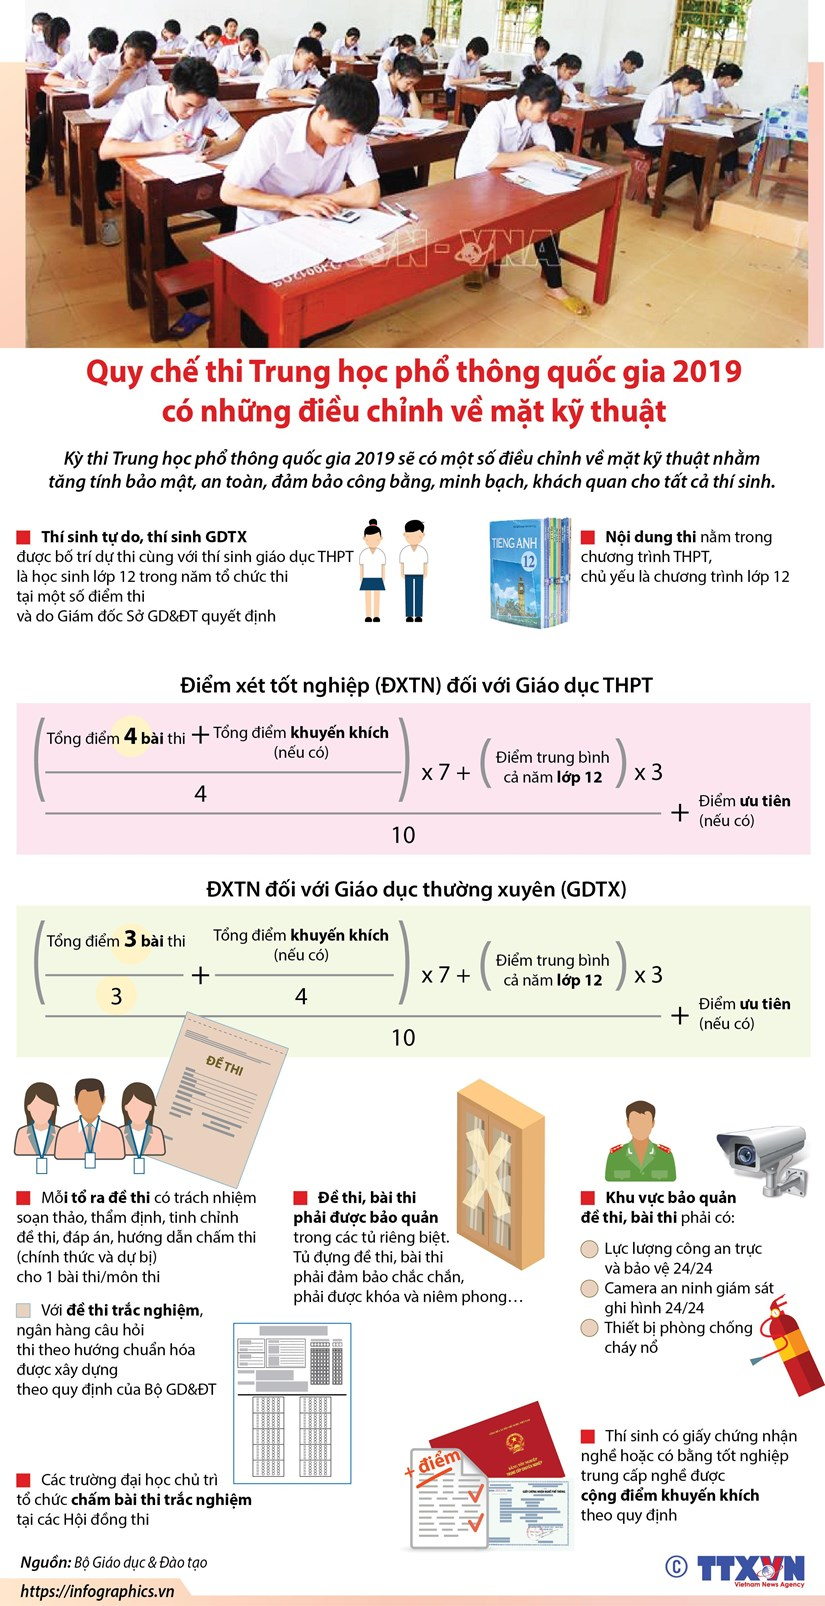 [Infographics] Quy che thi THPT quoc gia 2019 dieu chinh ve ky thuat hinh anh 1